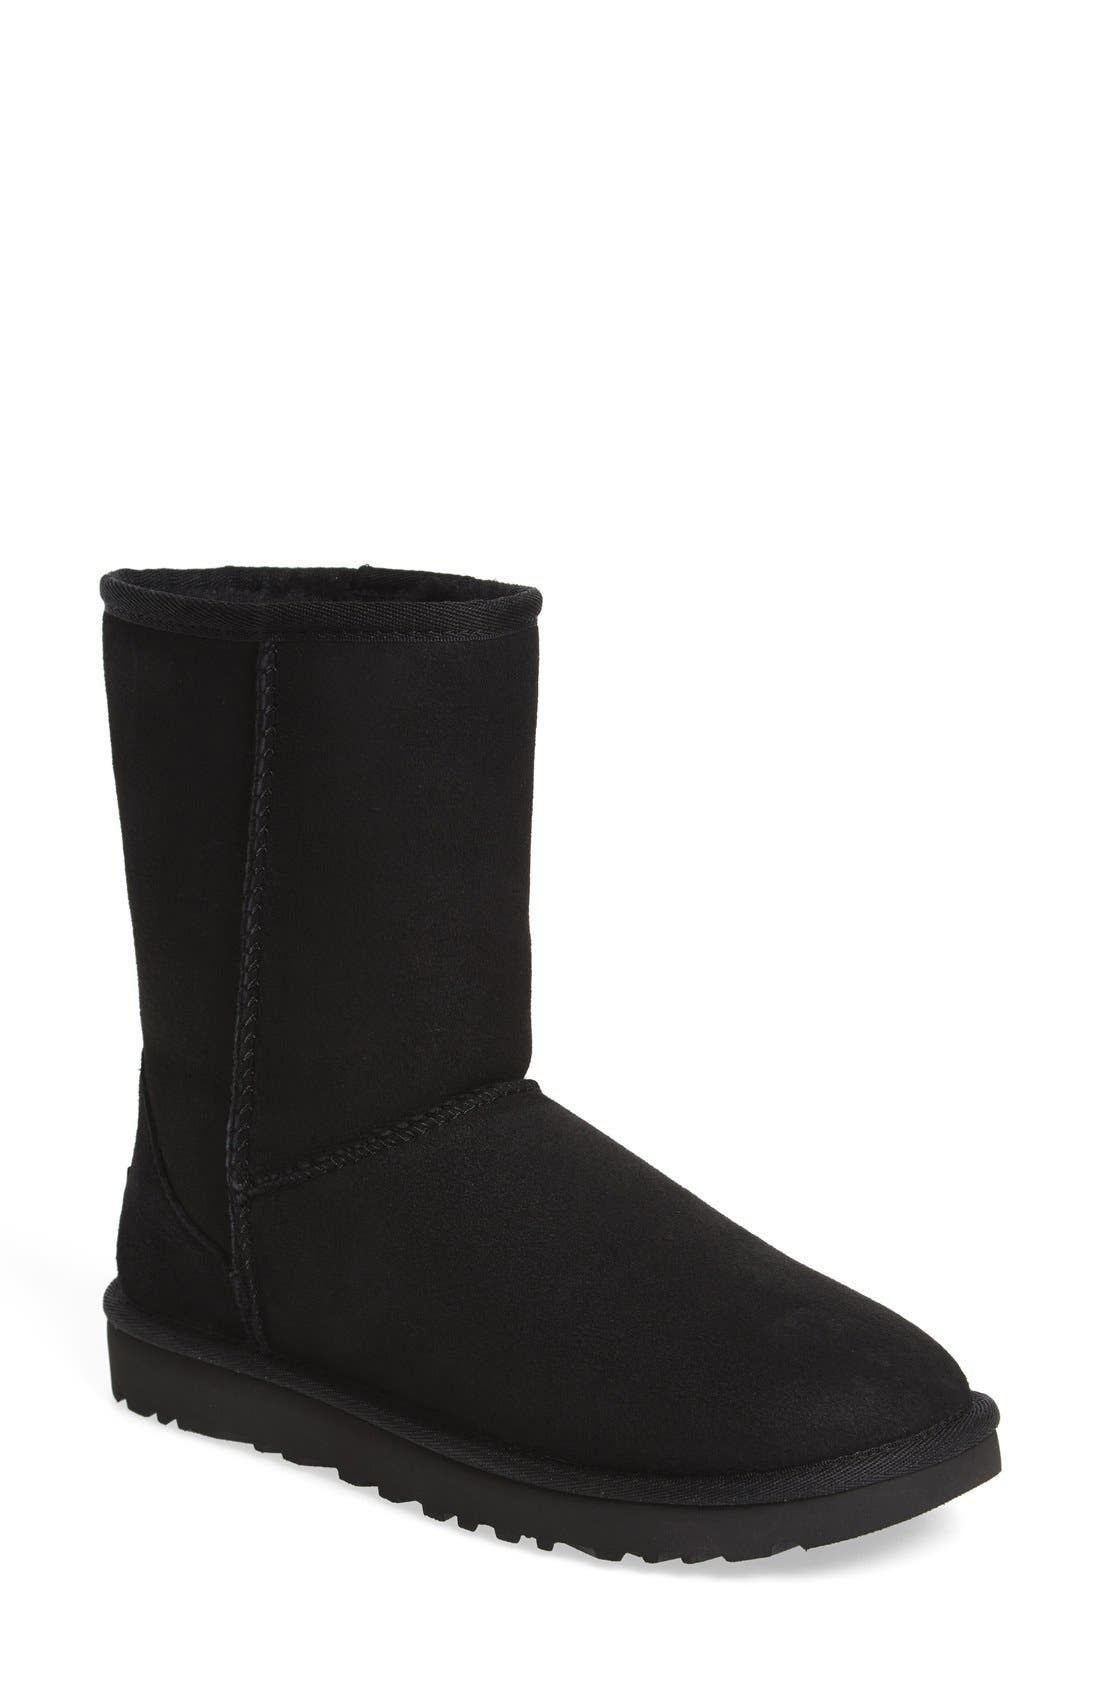 basic black uggs